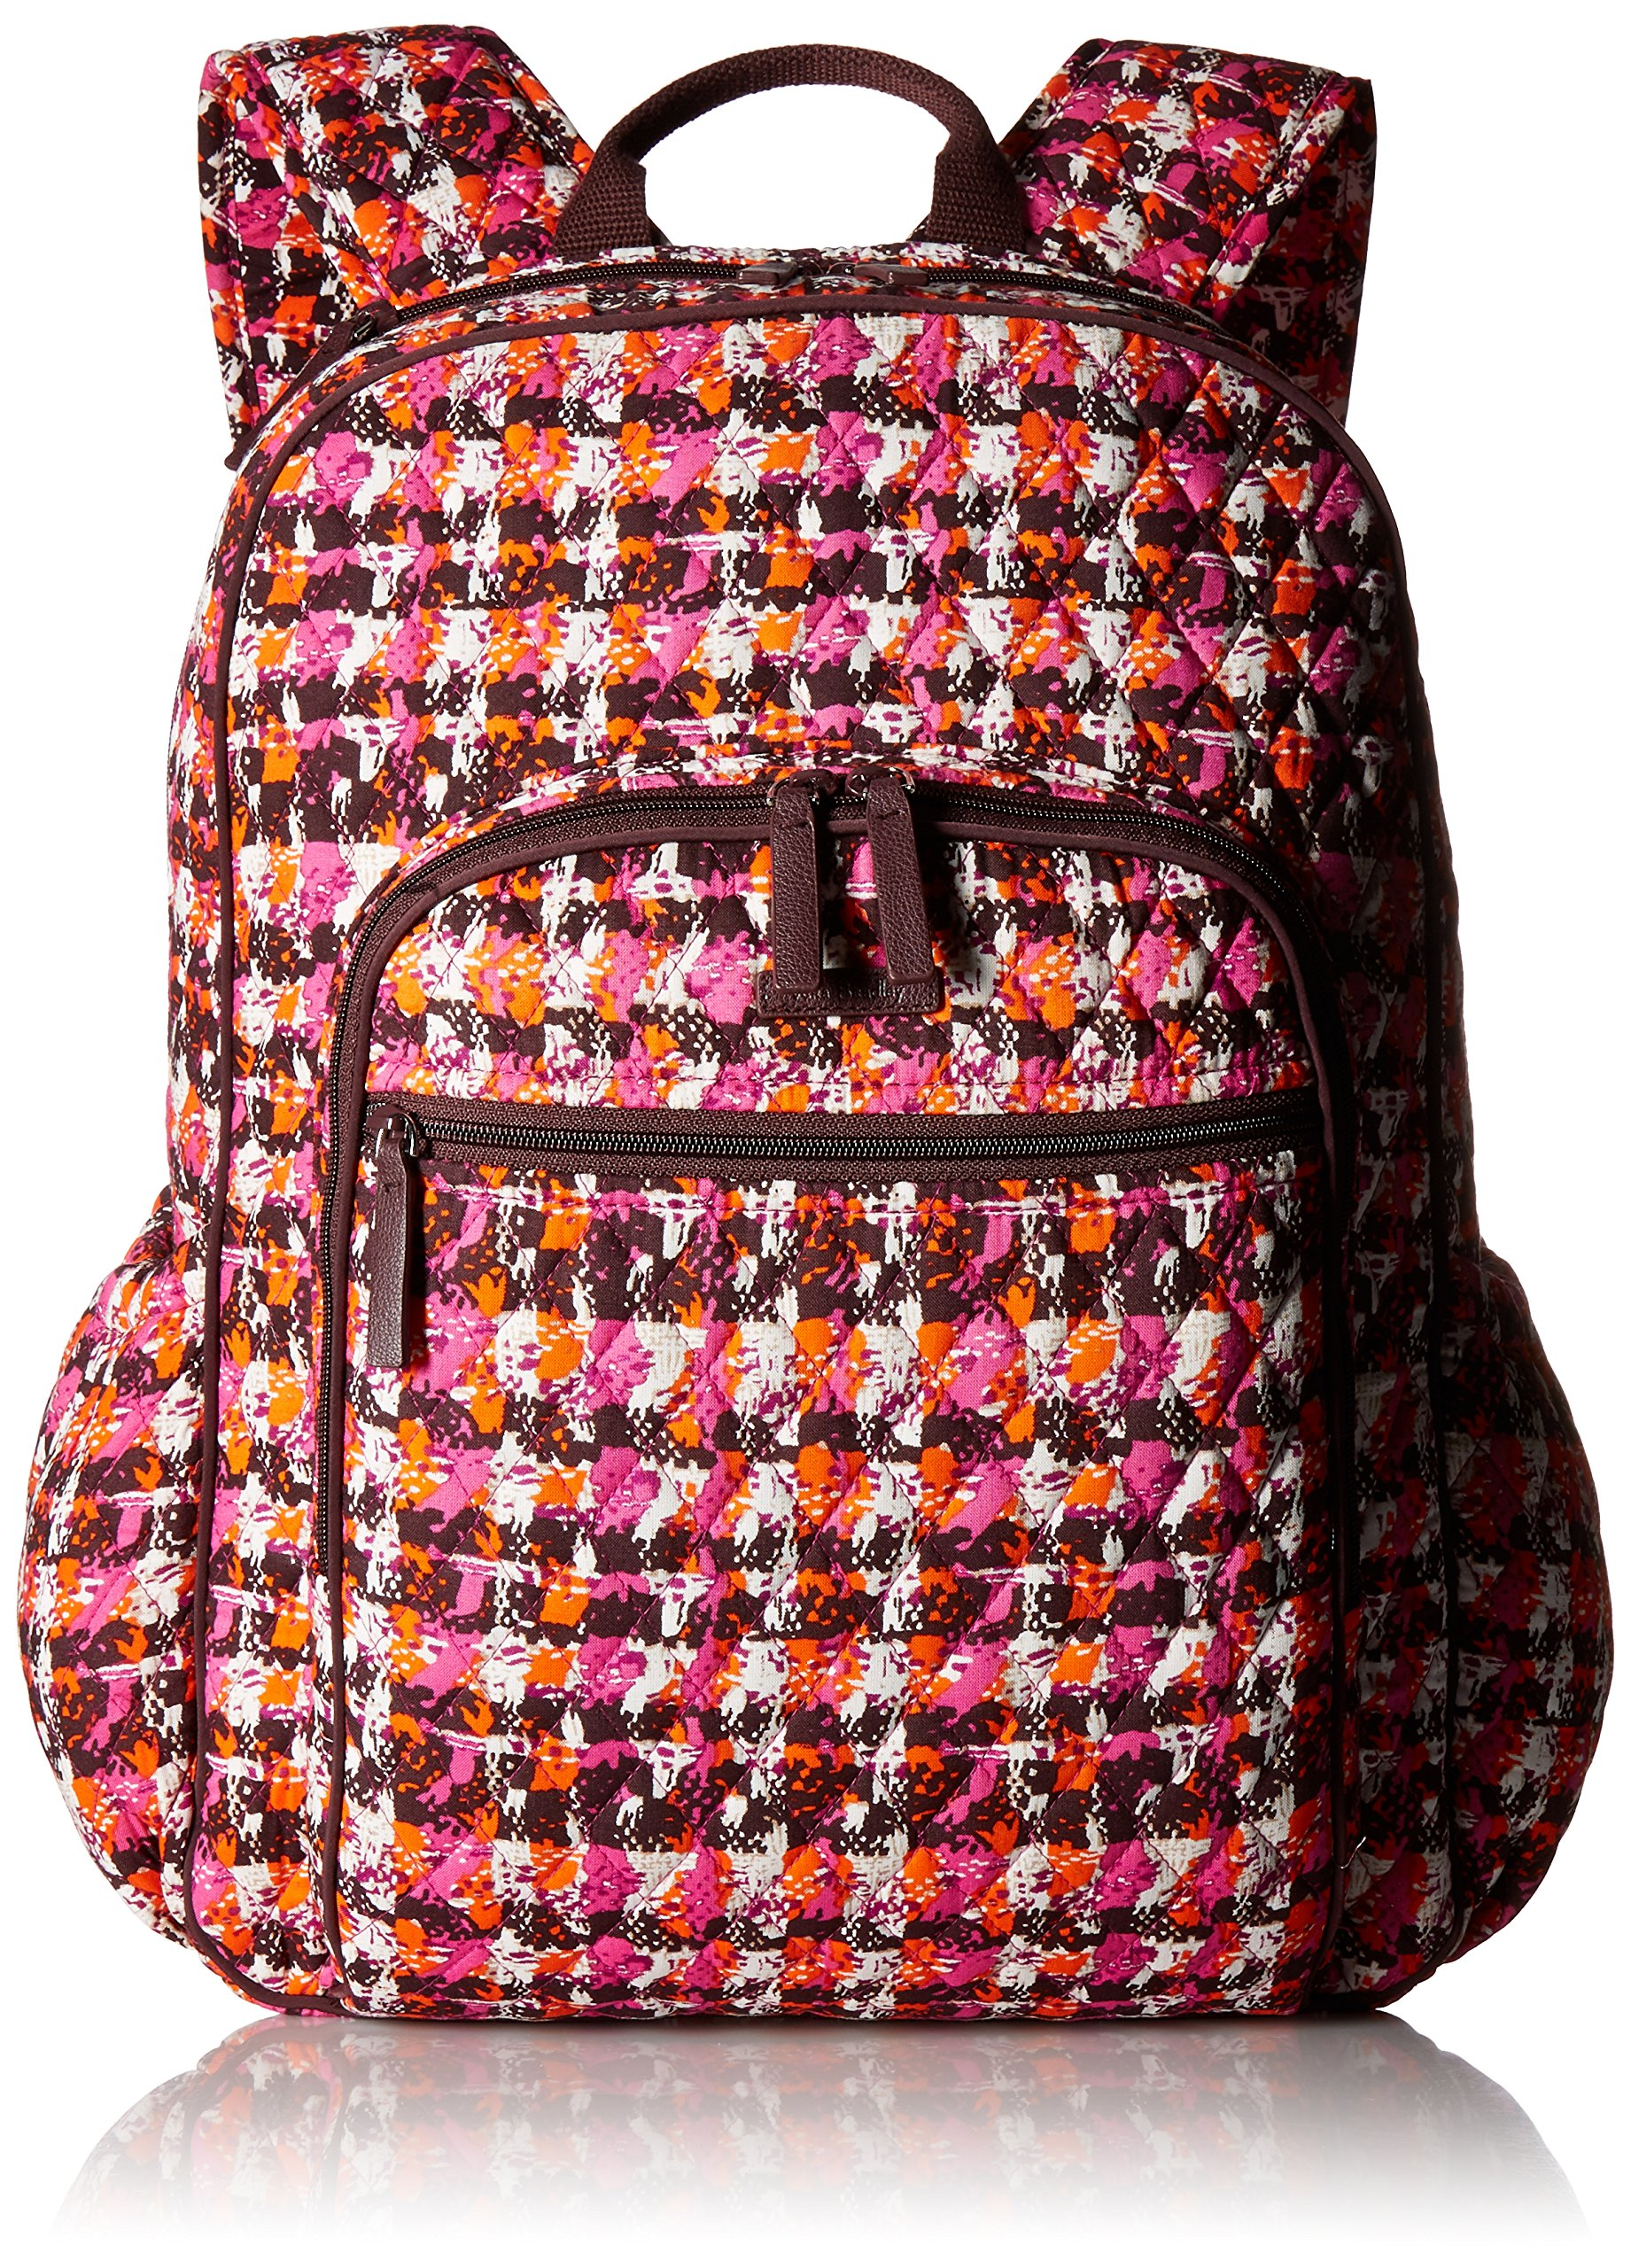 Women's Campus Tech Backpack, Signature Cotton, Houndstooth Tweed